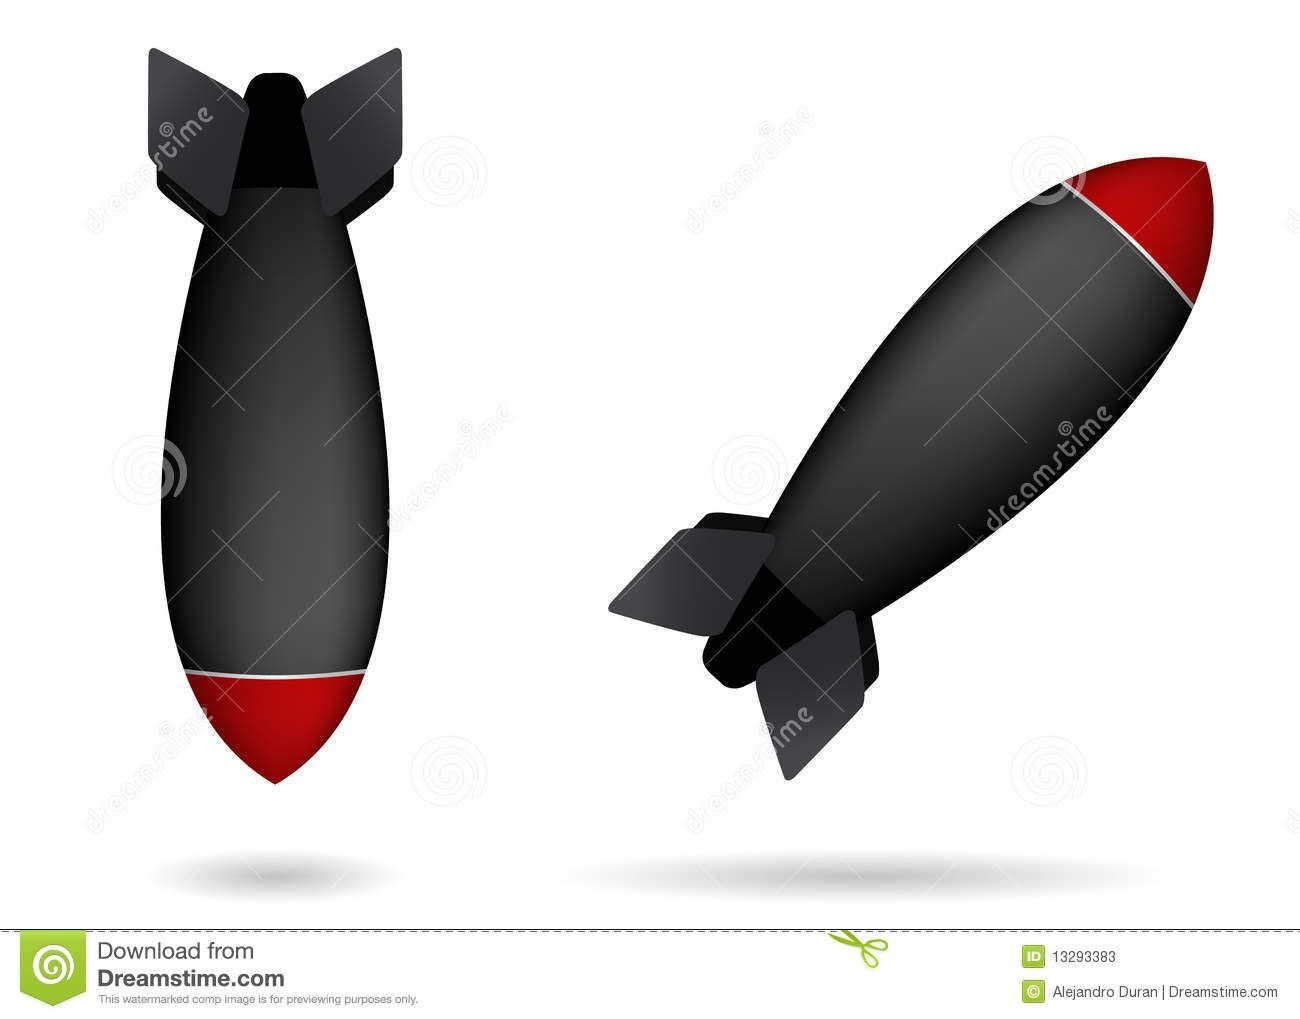 Nuclear Missiles Clipart.